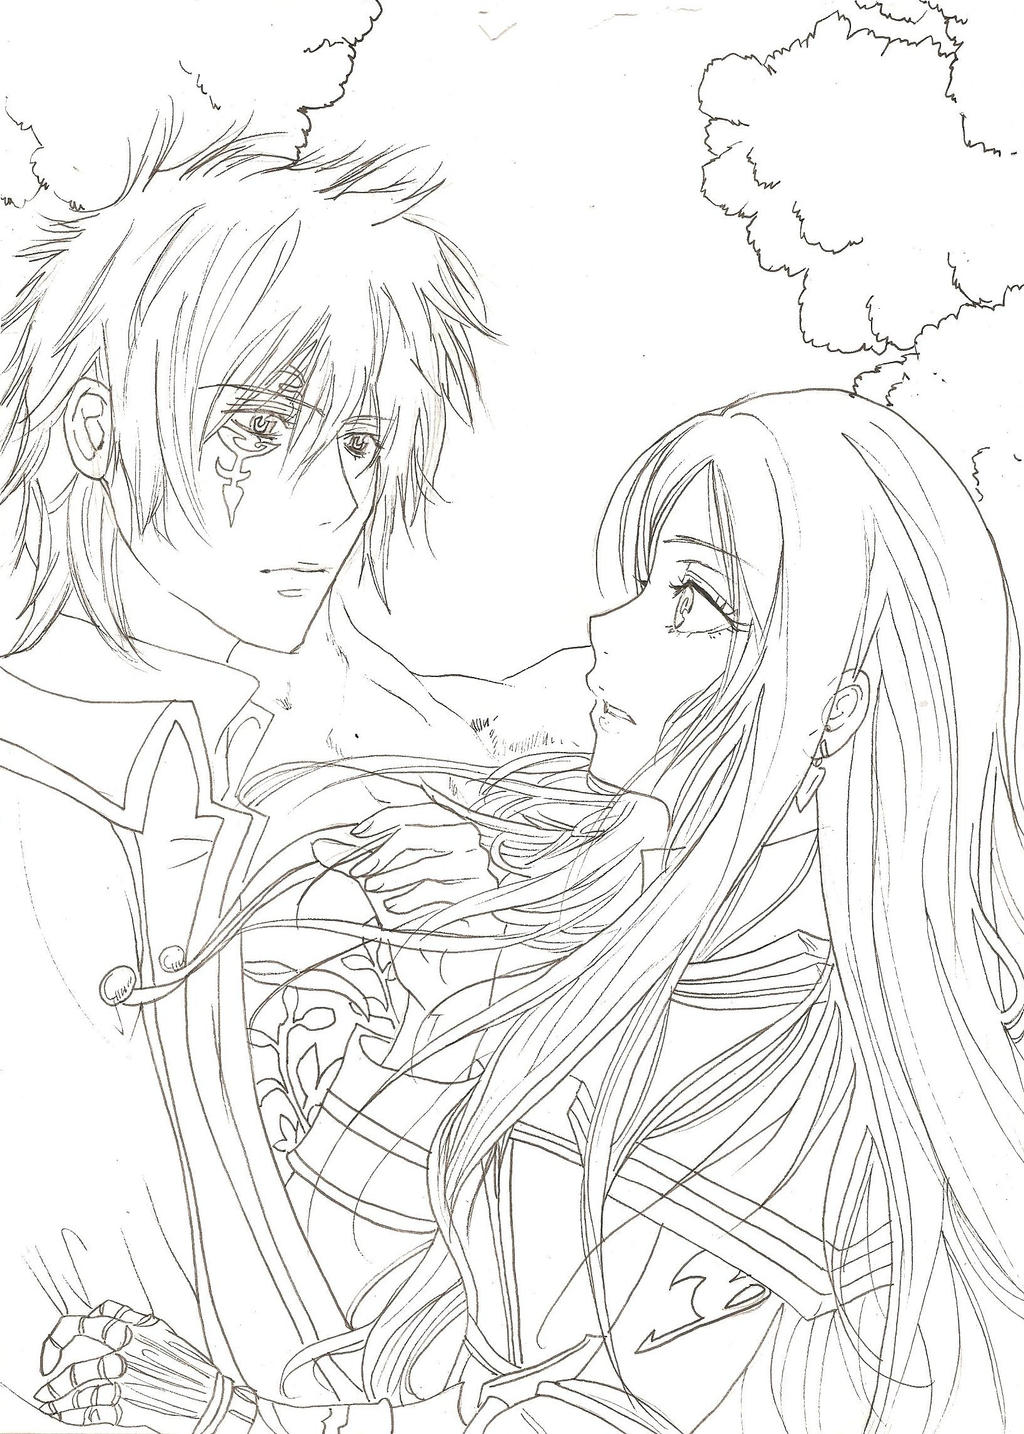 Erza and Jellal from Fairy Tail (lineart) by yoolin on ...